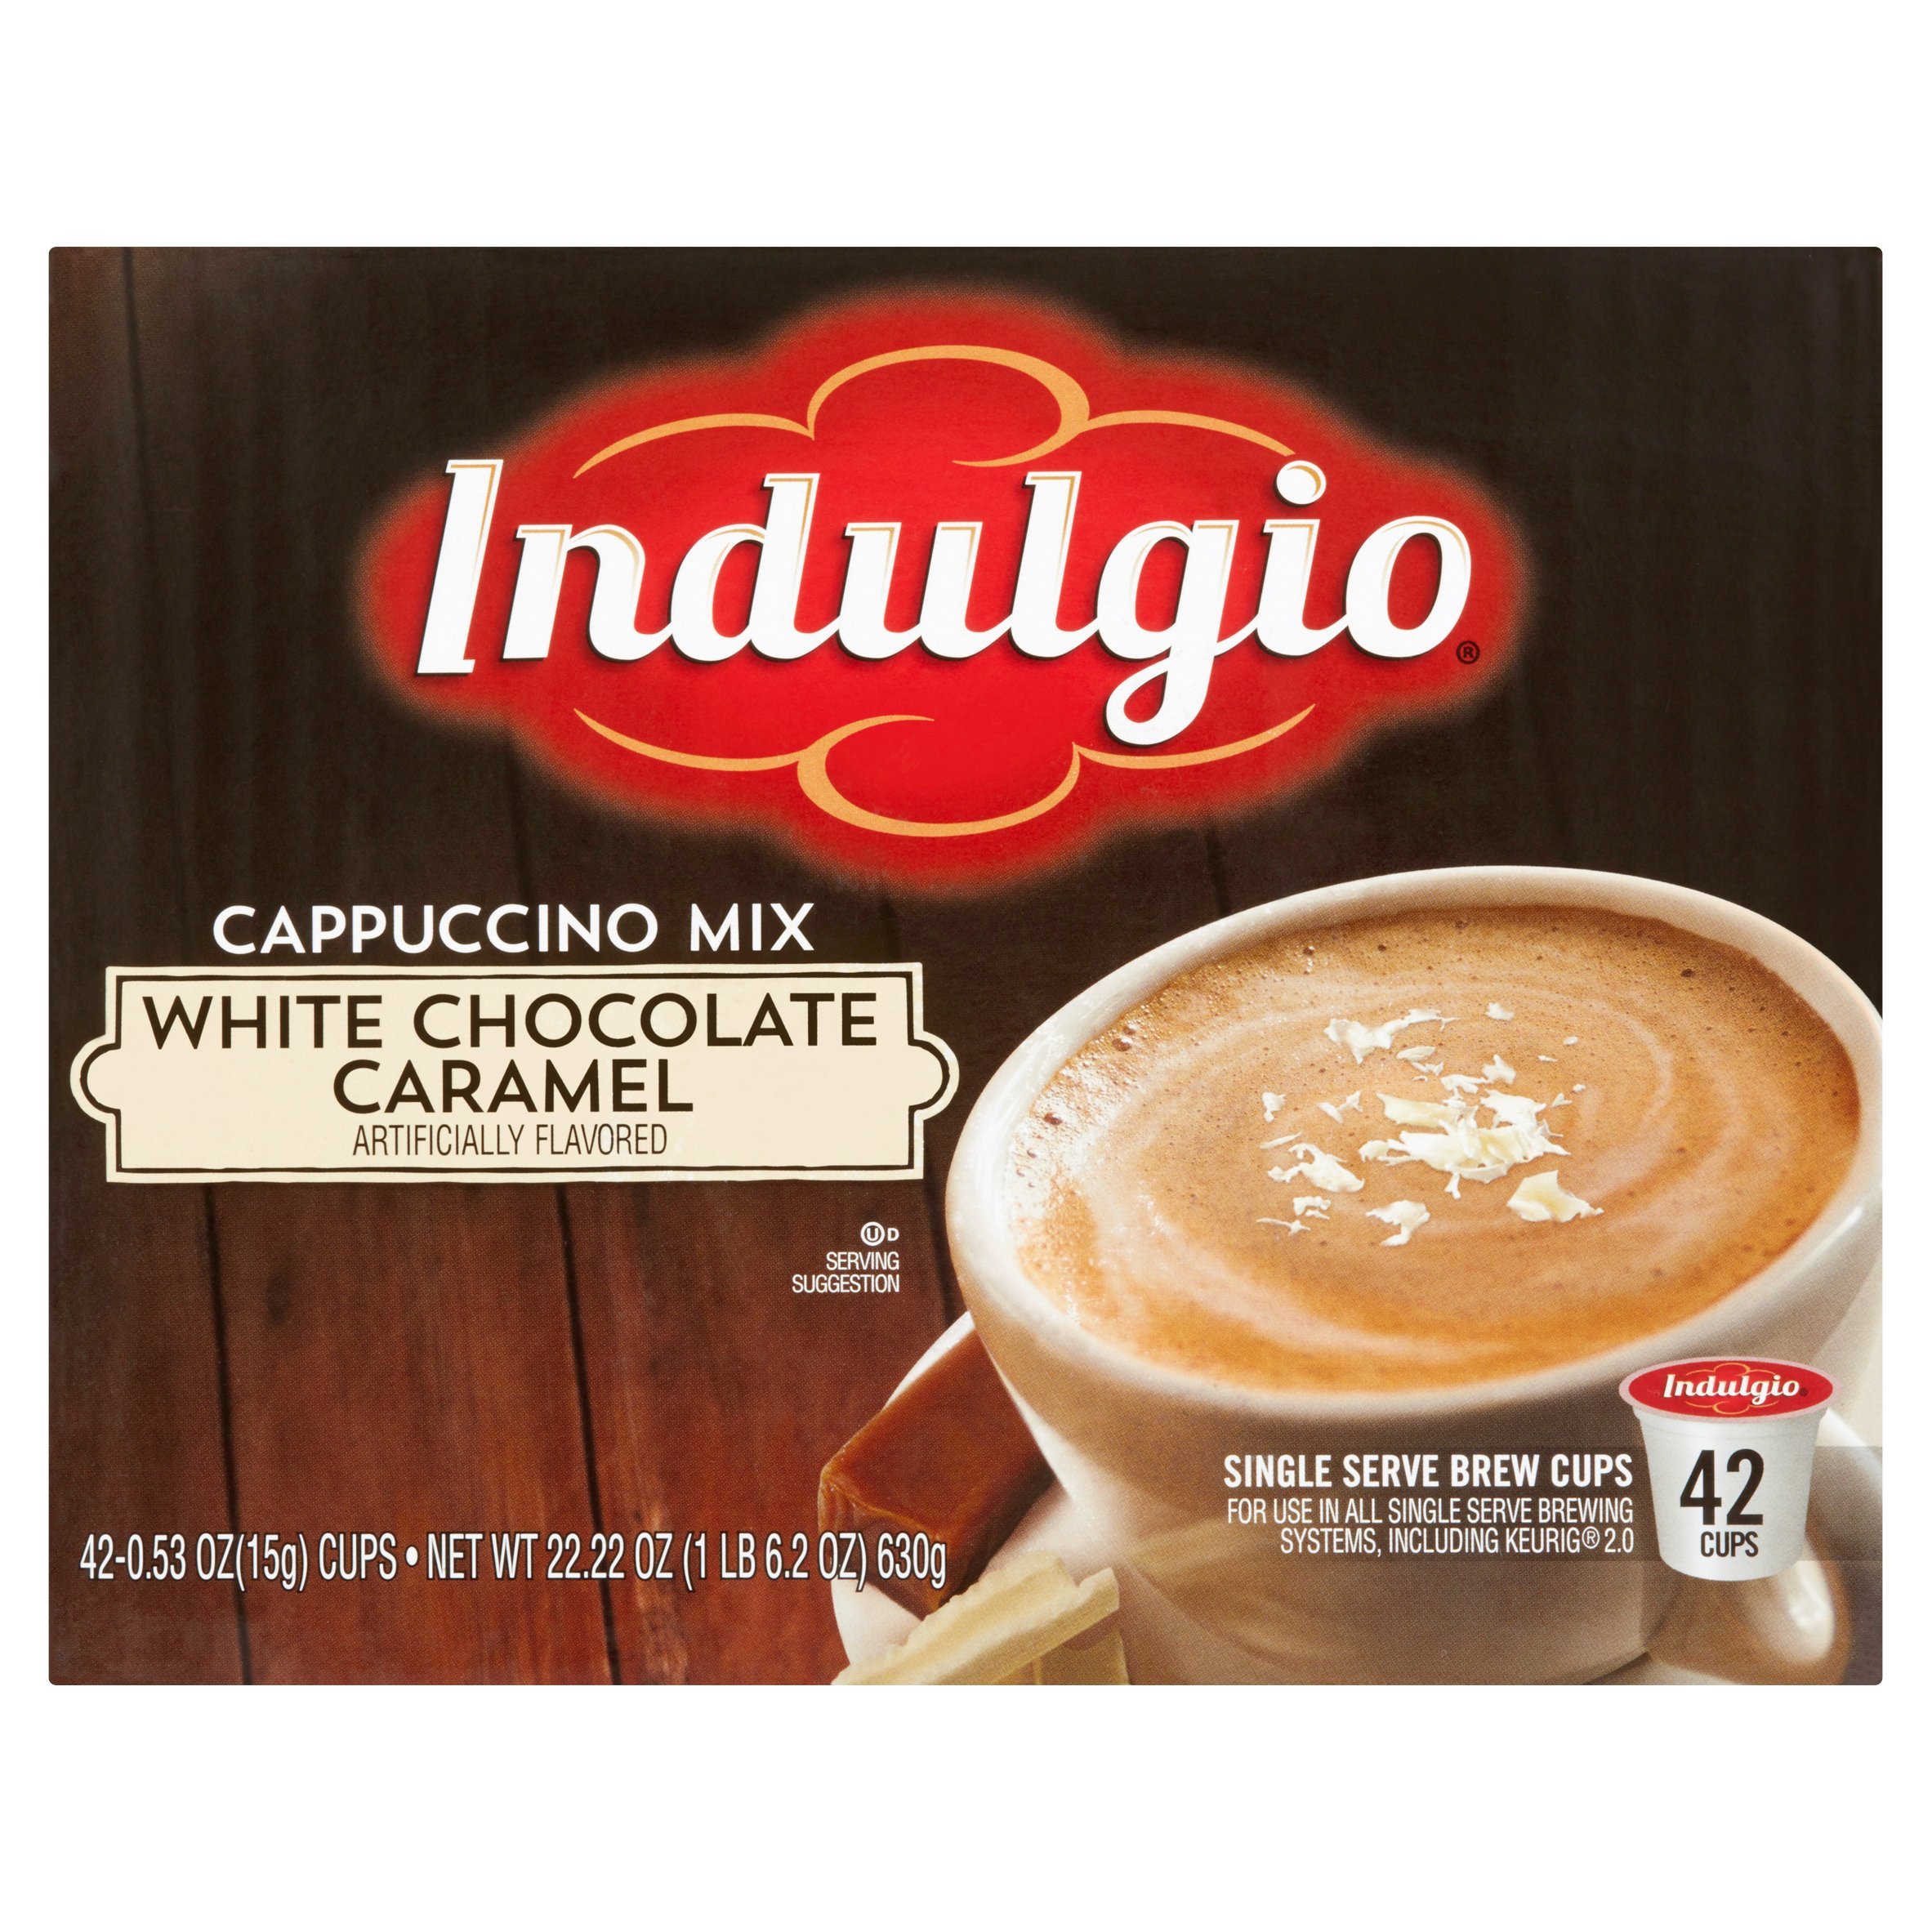 Indulgio Cappuccino Mix White Chocolate Caramel Single Serve Brew Cups, 0.53 oz, 42 count